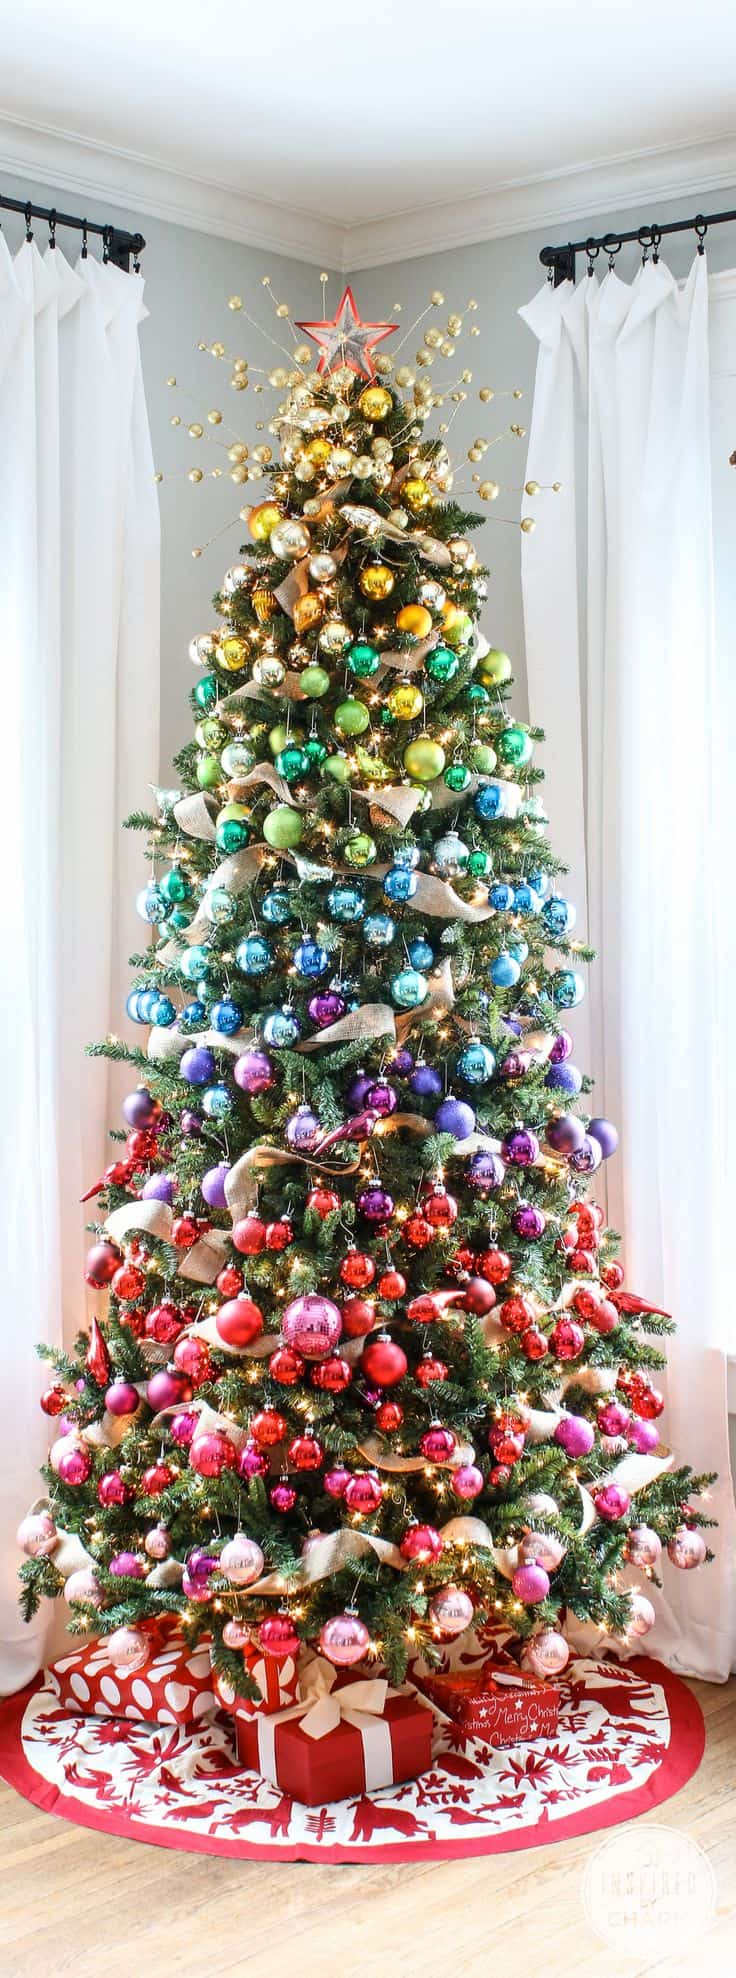 Christmas Tree Ideas (6)